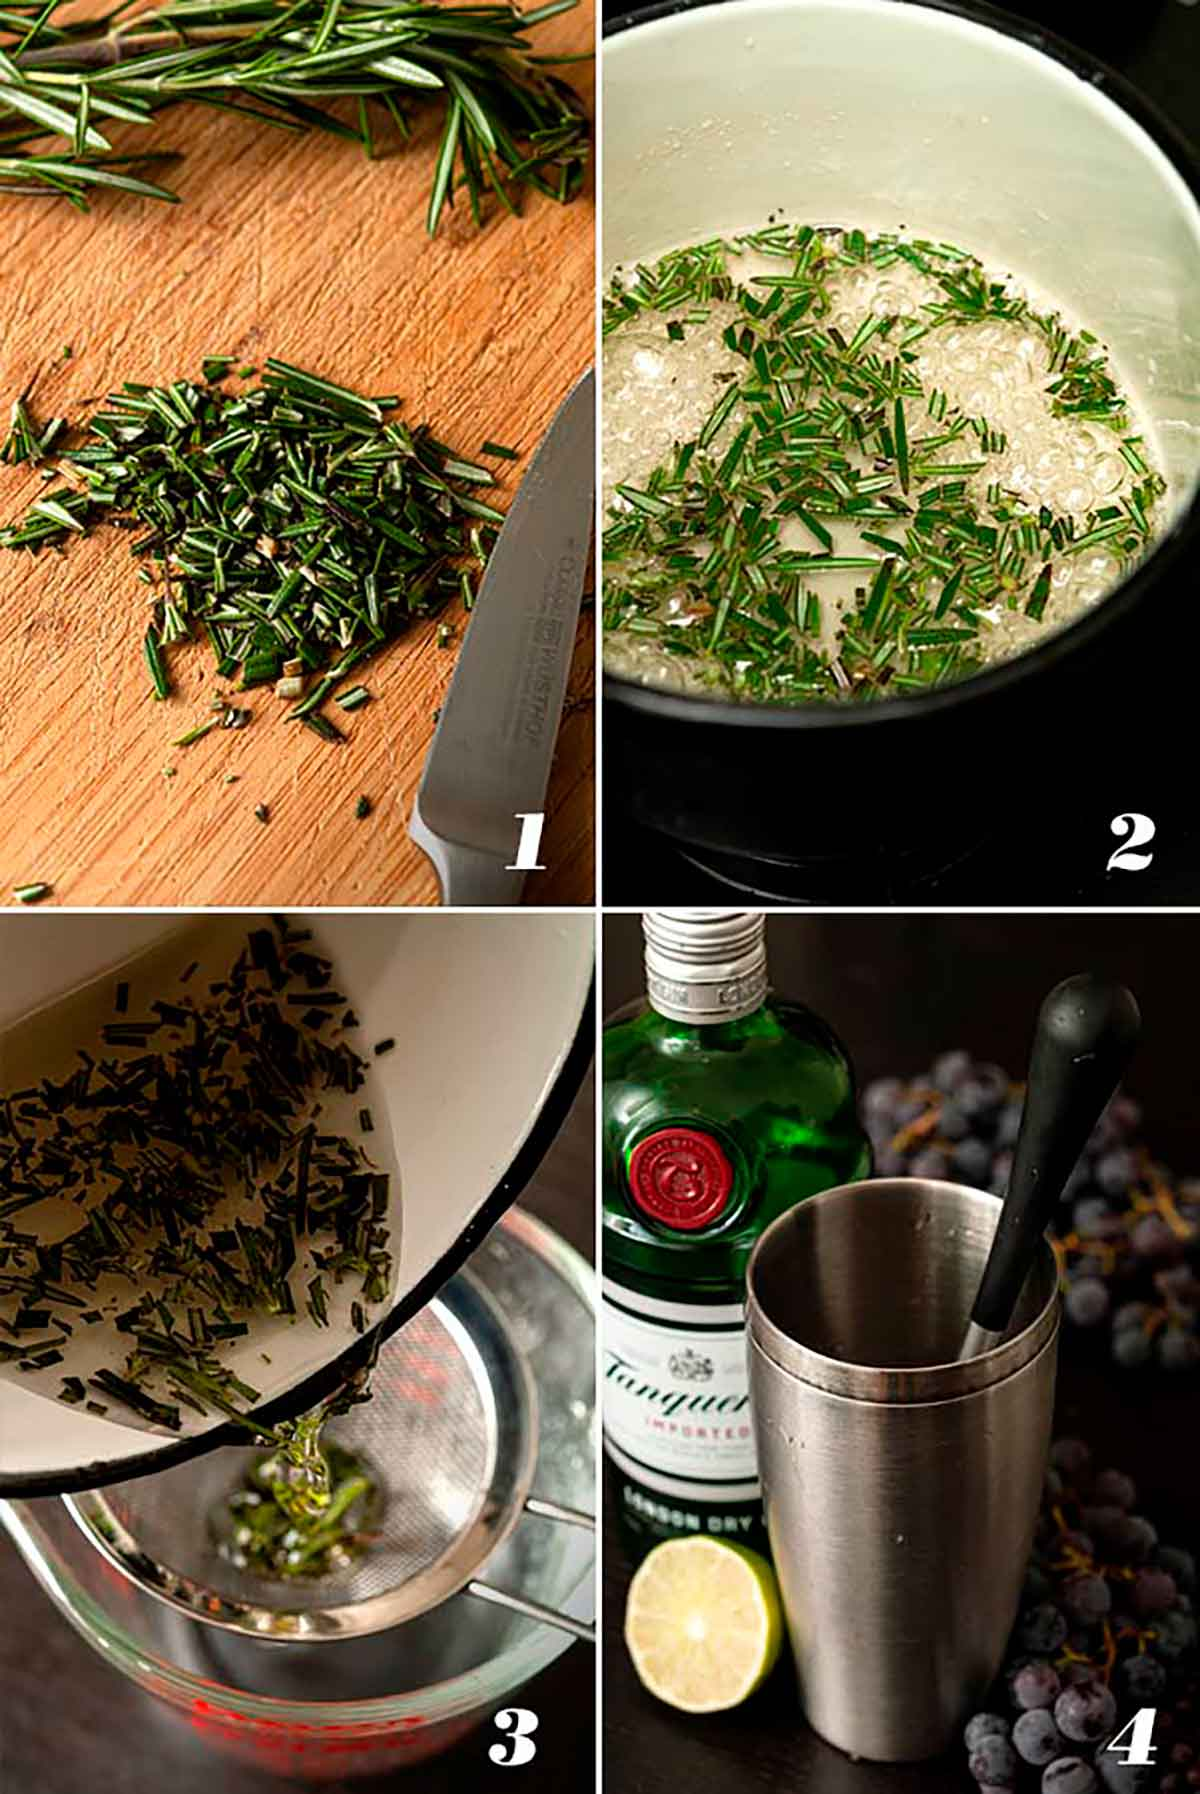 A collage of 4 images showing how to make a rosemary-grape cocktail.